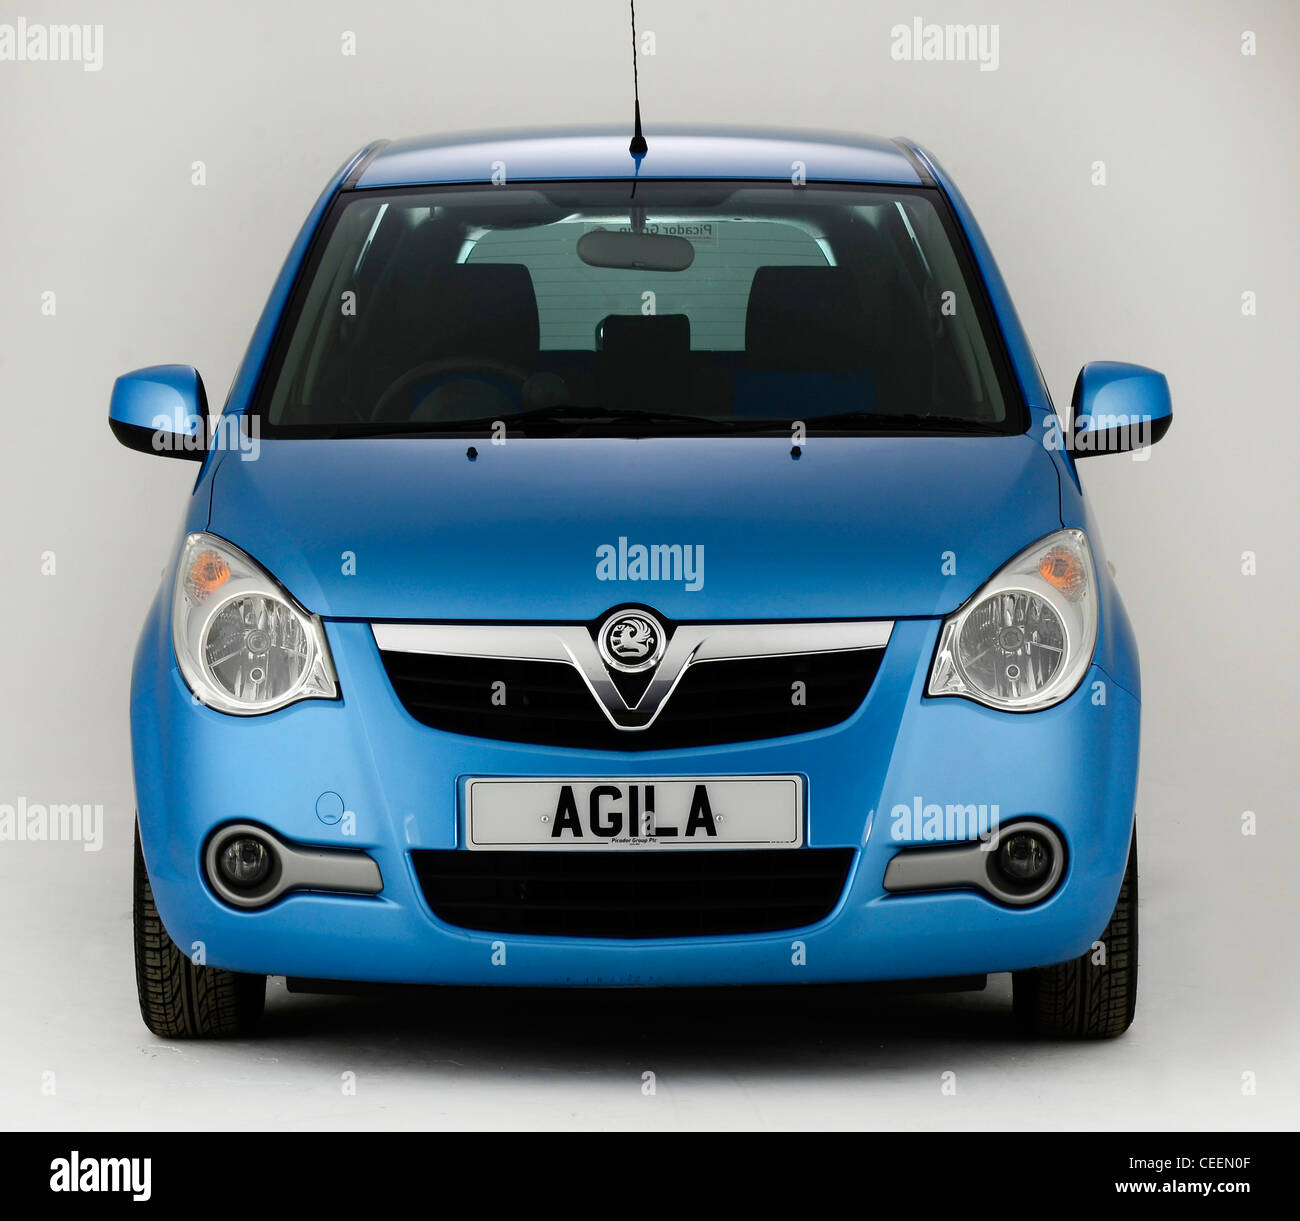 2010 Vauxhall Agila Photo Stock